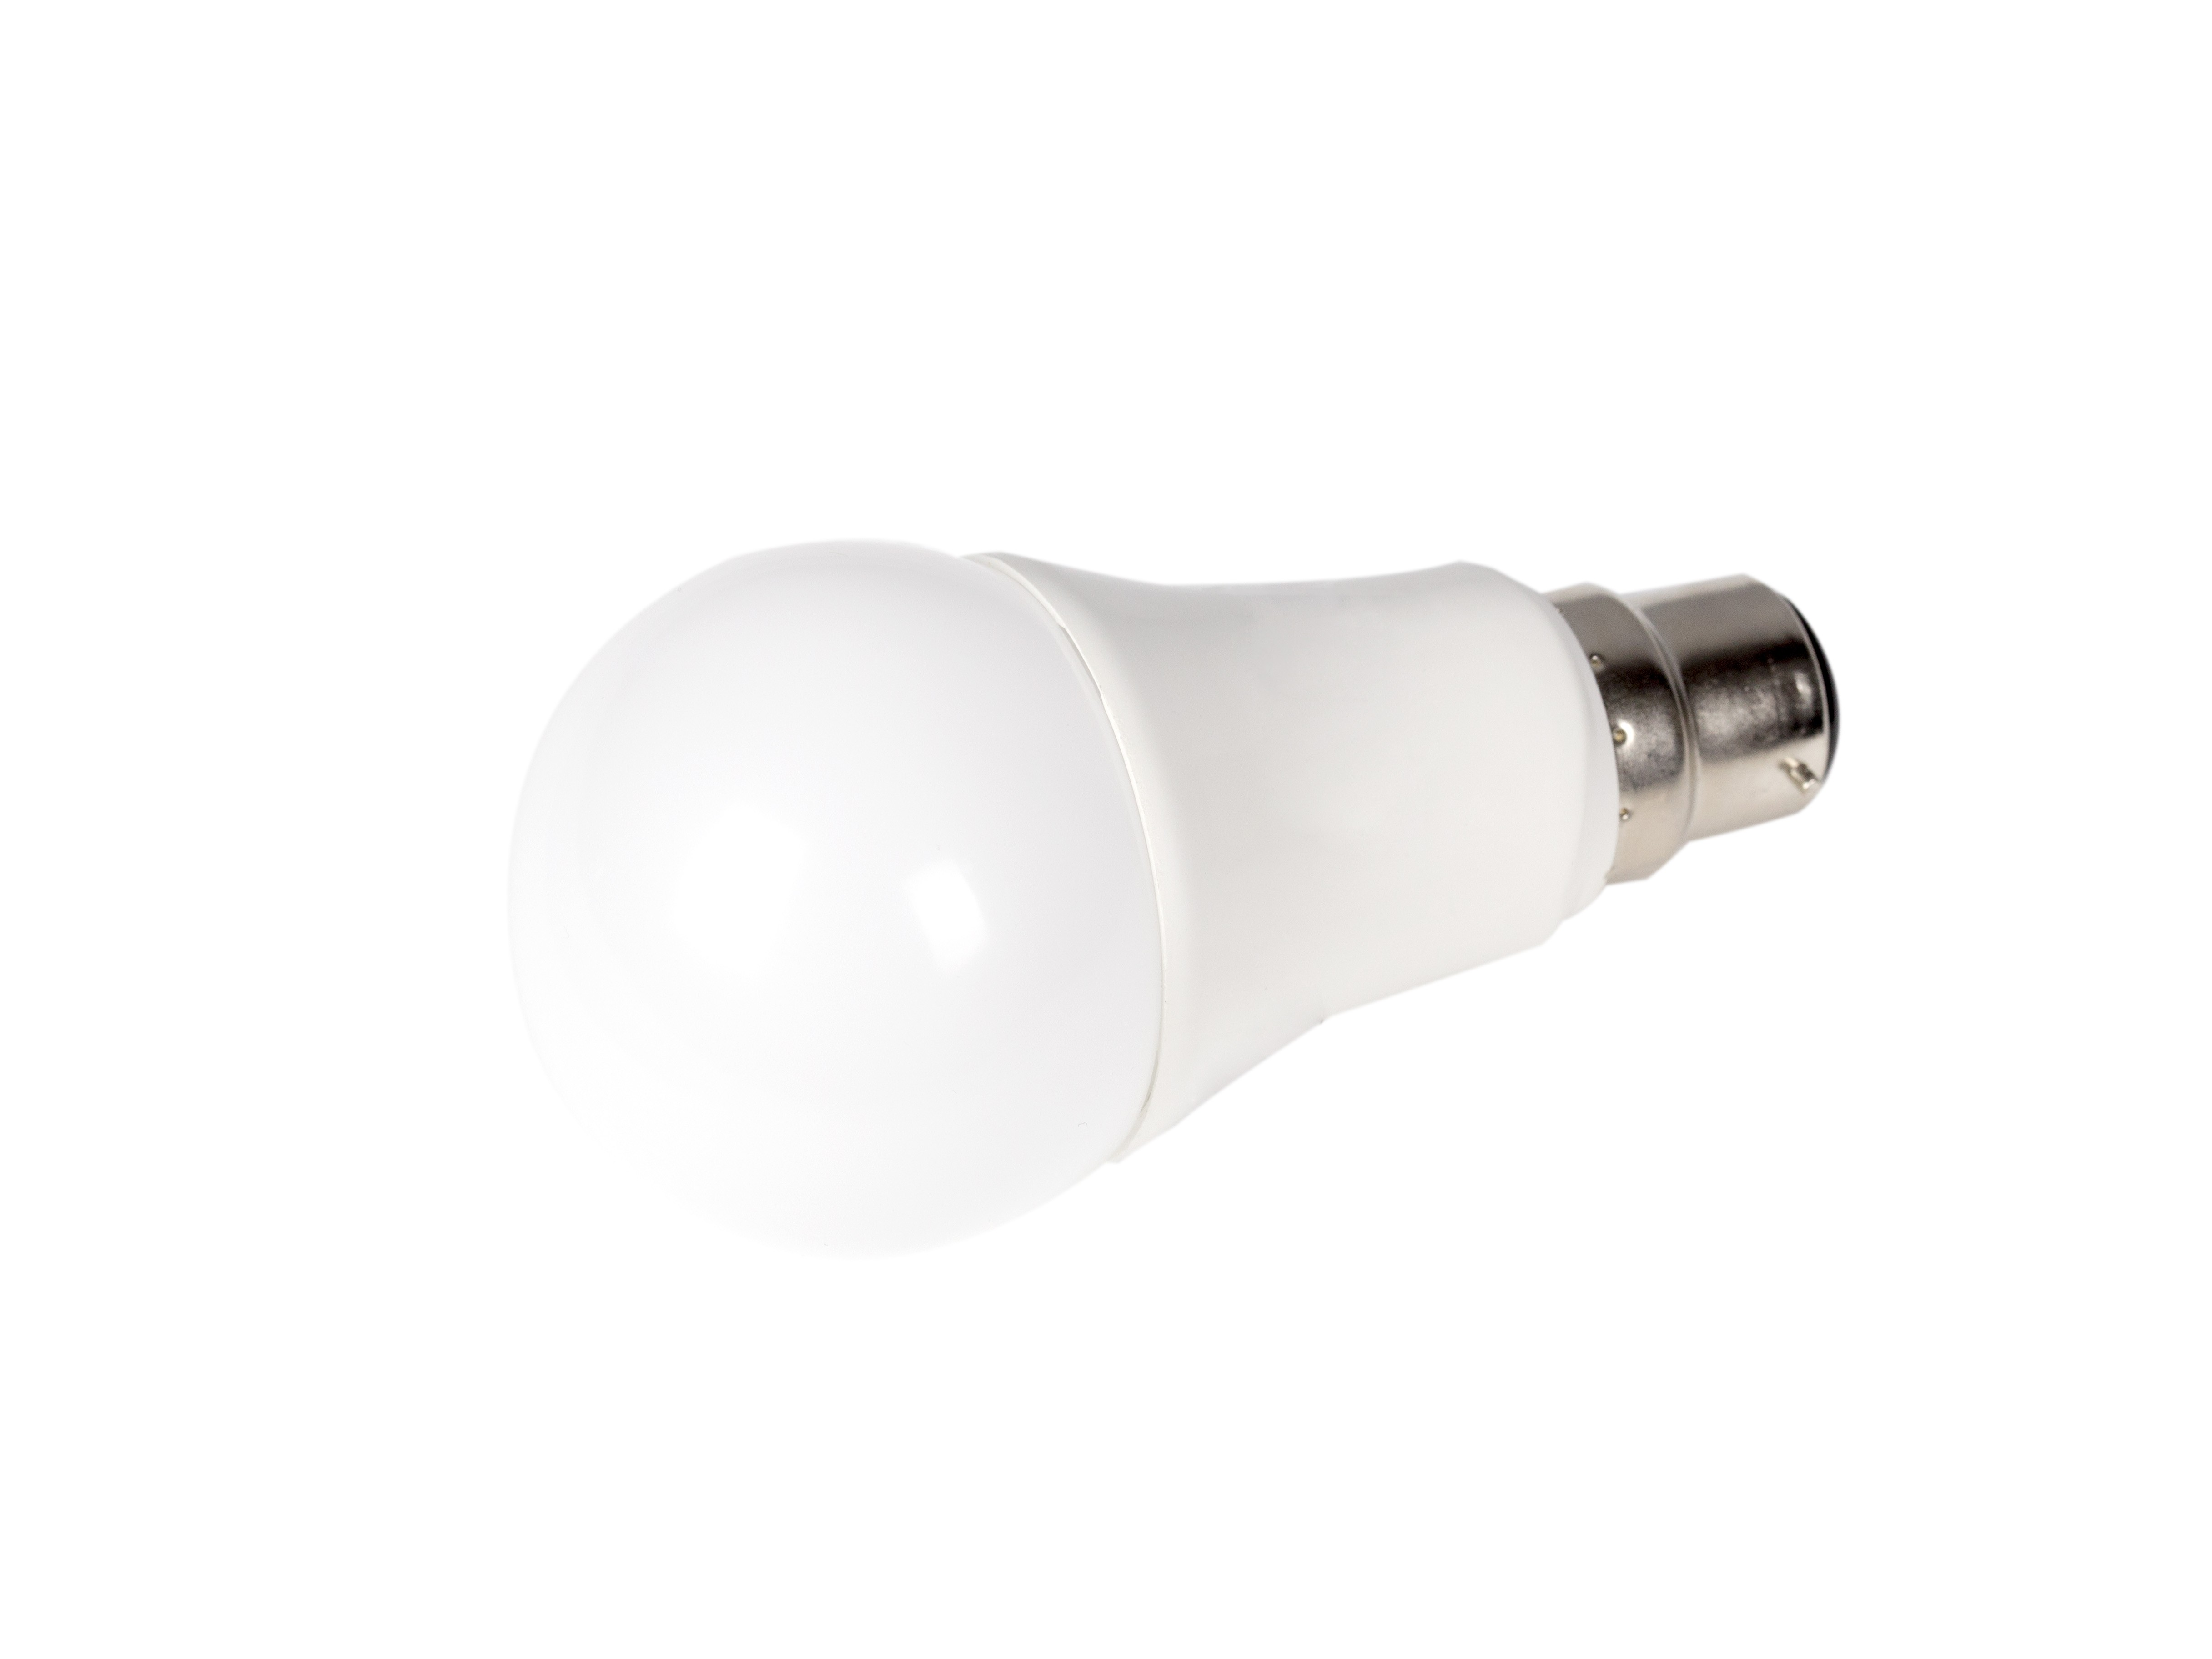 Robus RCG8CXB22 GLS CONNECT 8W WIFI Tunable LED Lamp, B22 - Buy online or in store from John Cribb & Sons Ltd